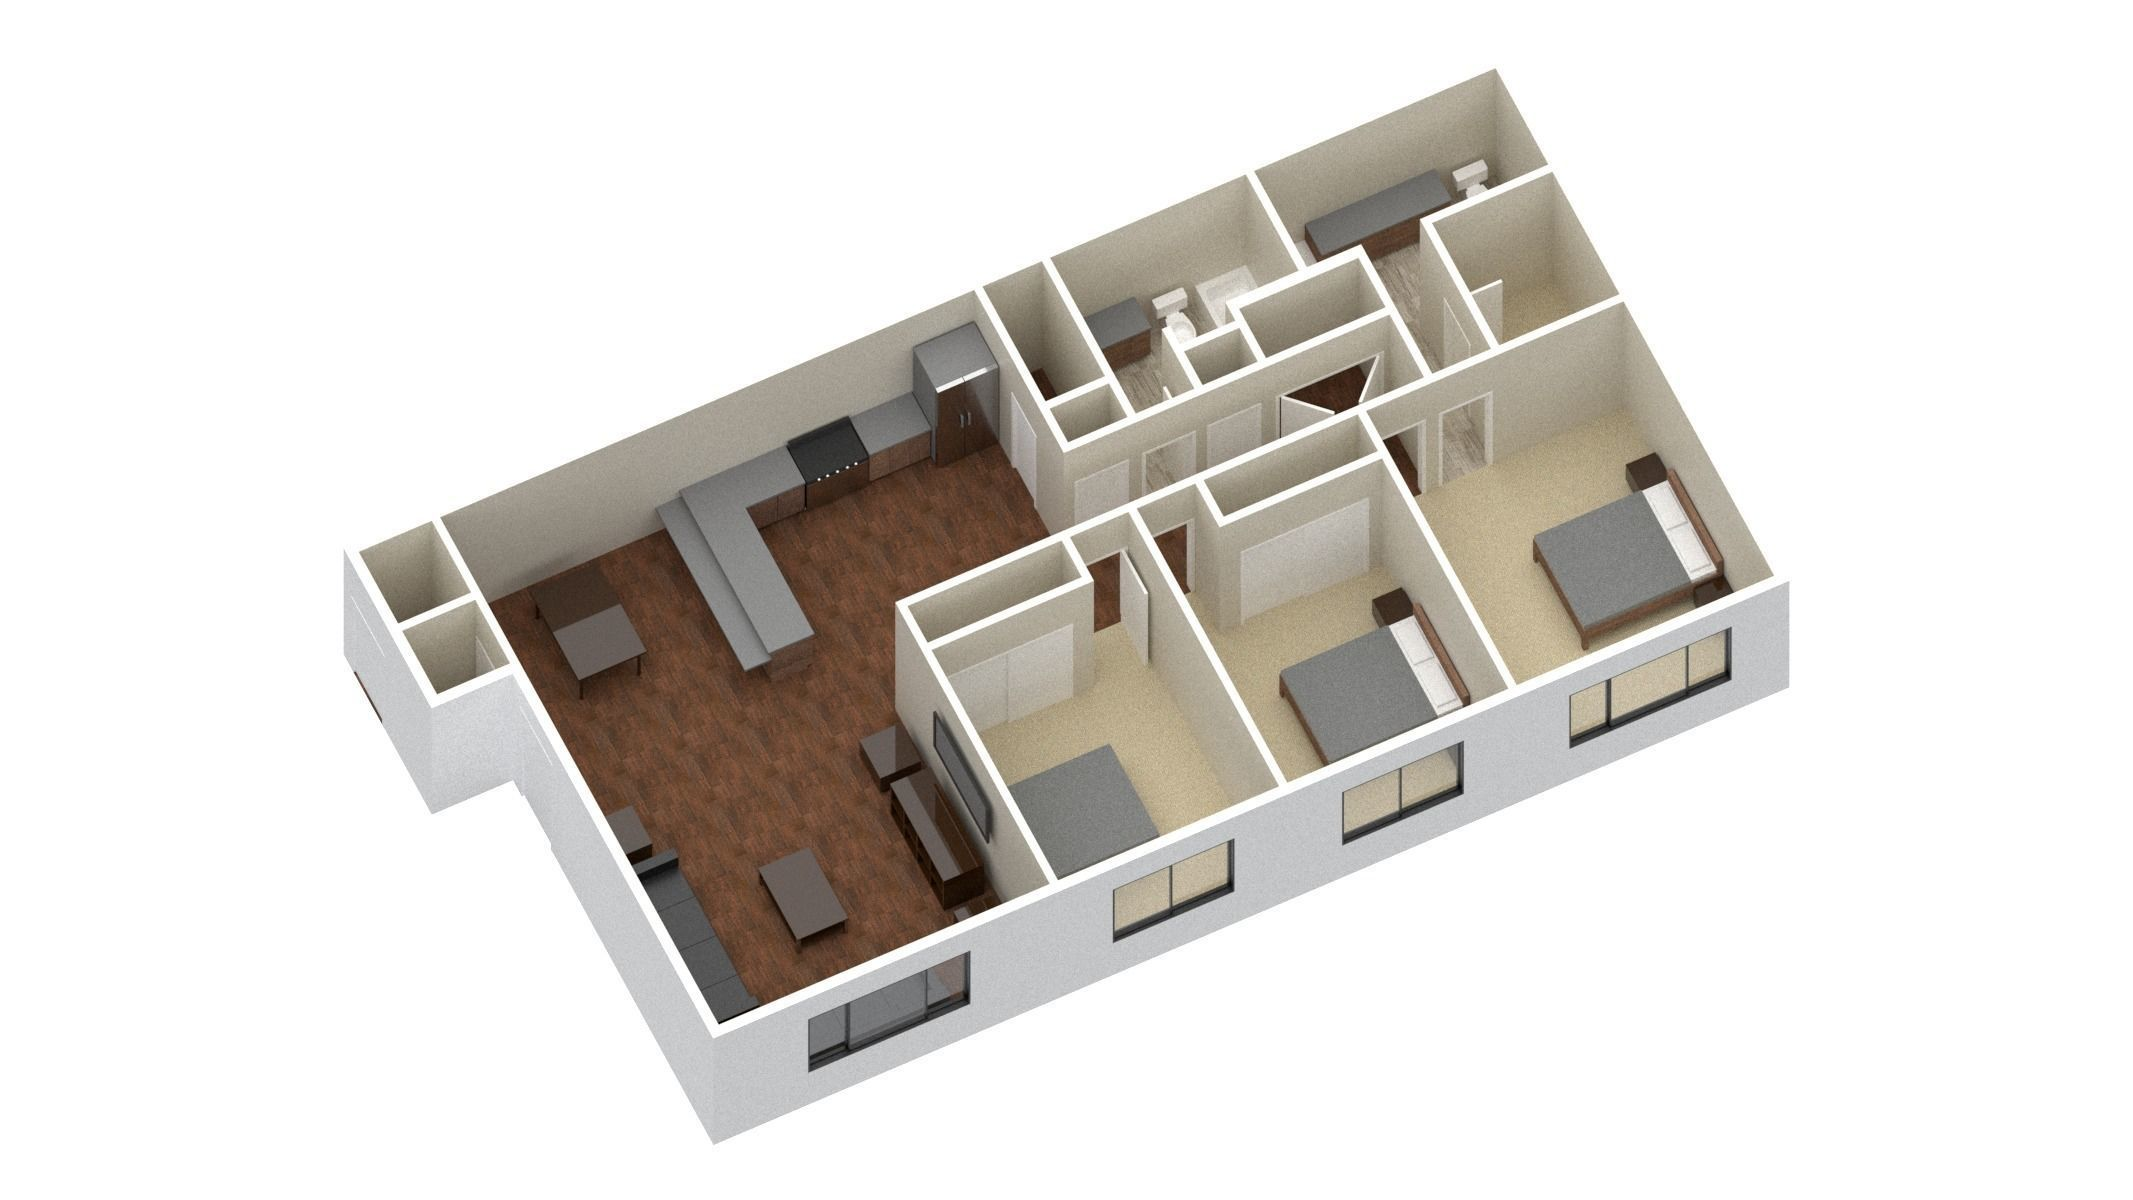 3 Bedroom 2 Bathroom Apartment Unit Model Modern Architectural 3d Model